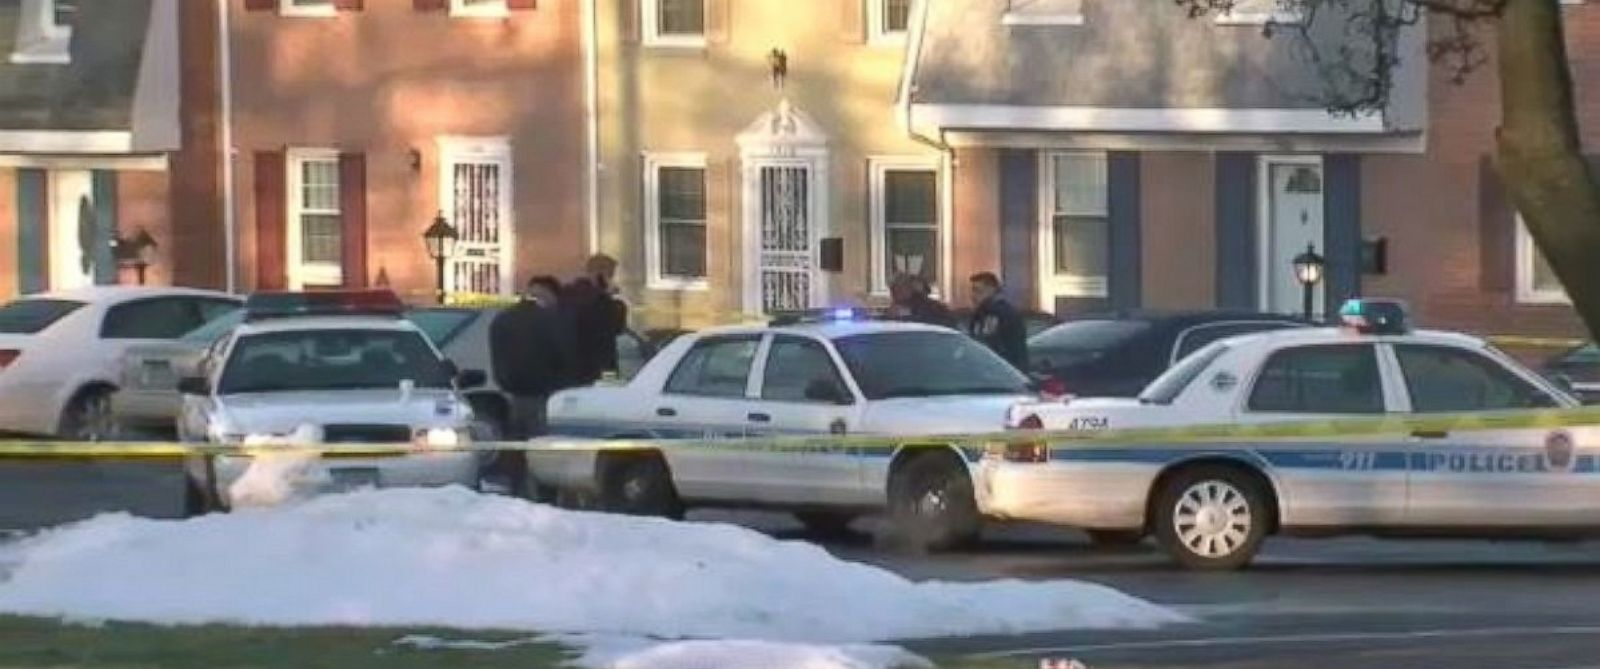 PHOTO: Prince Georges County police investigating homicides in Ft. Washington, Md., Feb. 2, 2016.